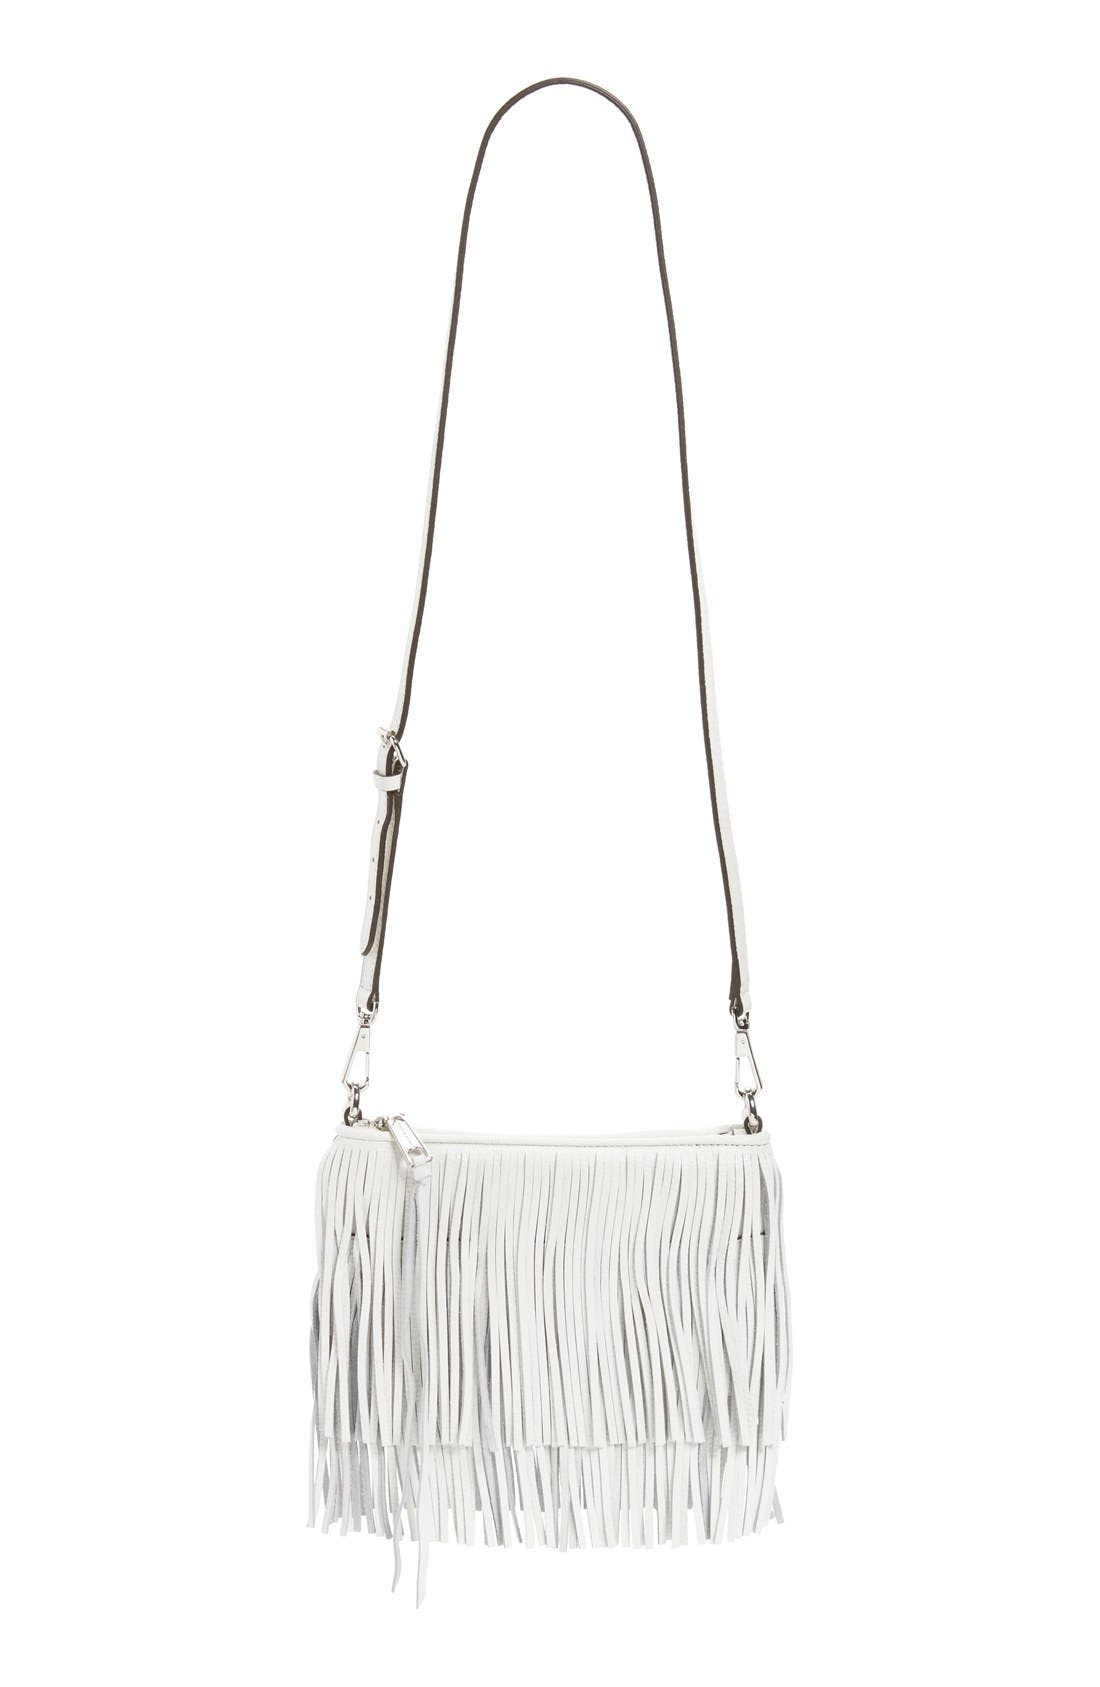 Alternate Image 1 Selected - Rebecca Minkoff 'Finn' Convertible Leather Clutch